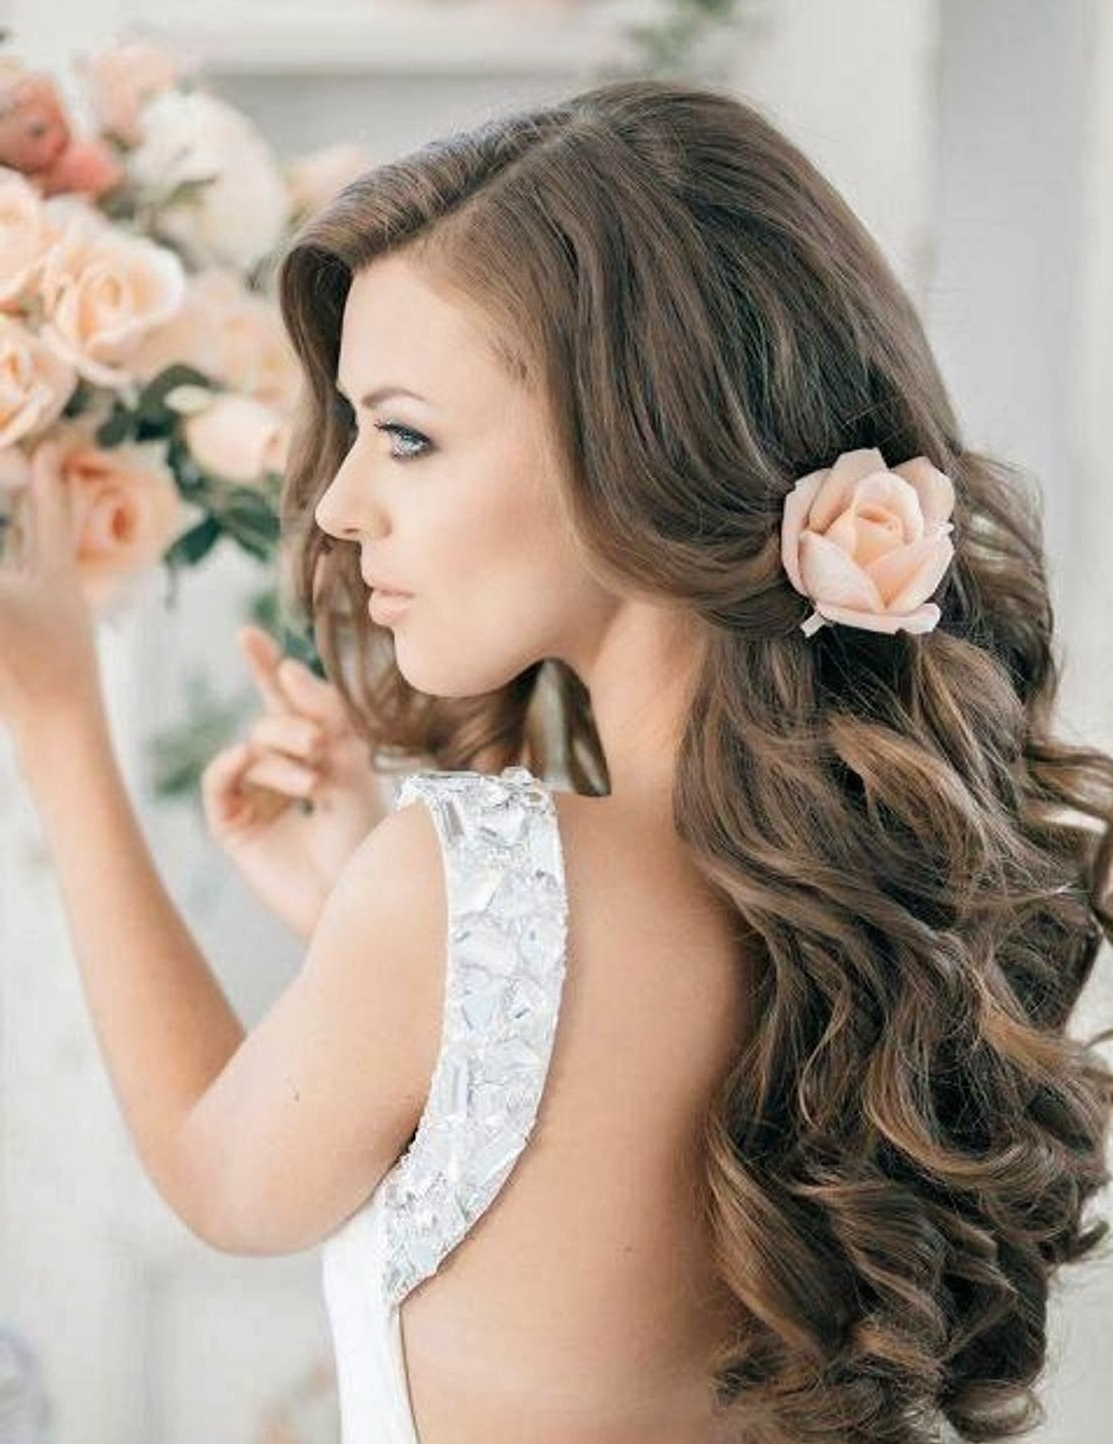 Famous Wedding Hairstyles Like A Princess In Wedding Hairstyles Down That Will Make You Feel Like A Princess (View 7 of 15)